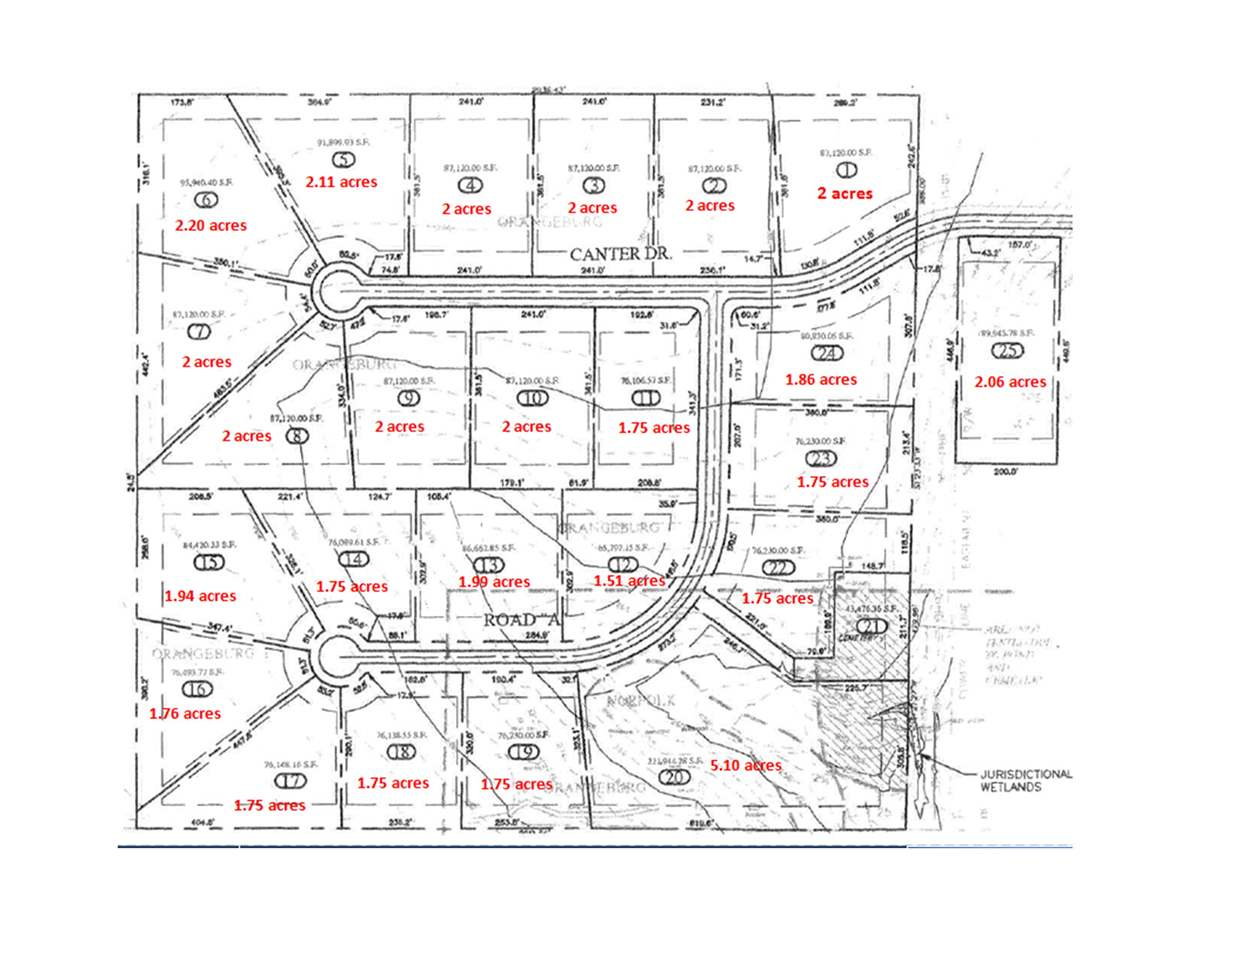 Lot 16 The Farm - Phase 2 , Perry, GA 31069